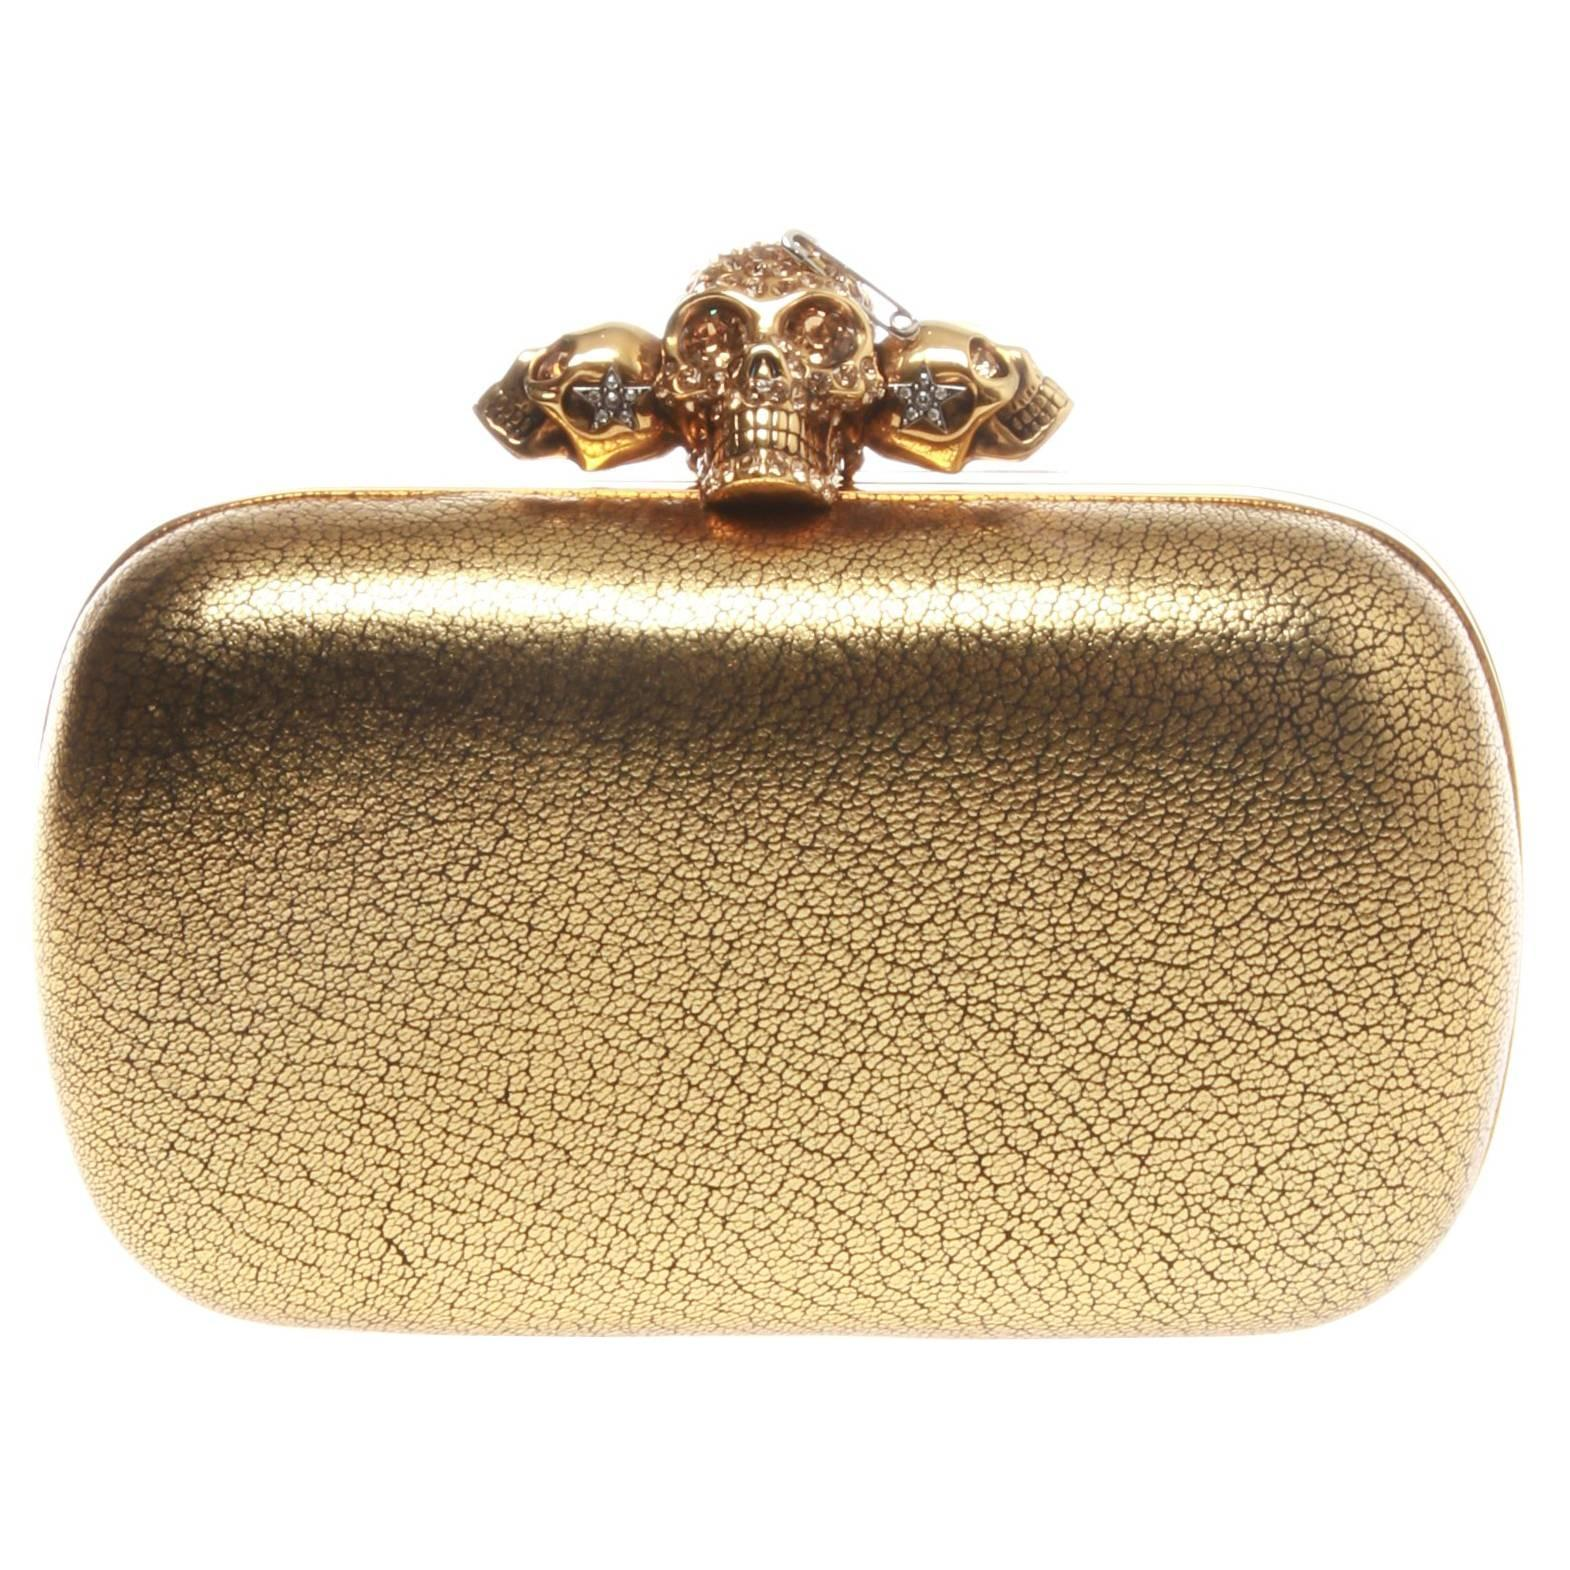 Mcqueen Clutch Sale Box Metallic Skull For Grained At Gold Alexander oBexrdC